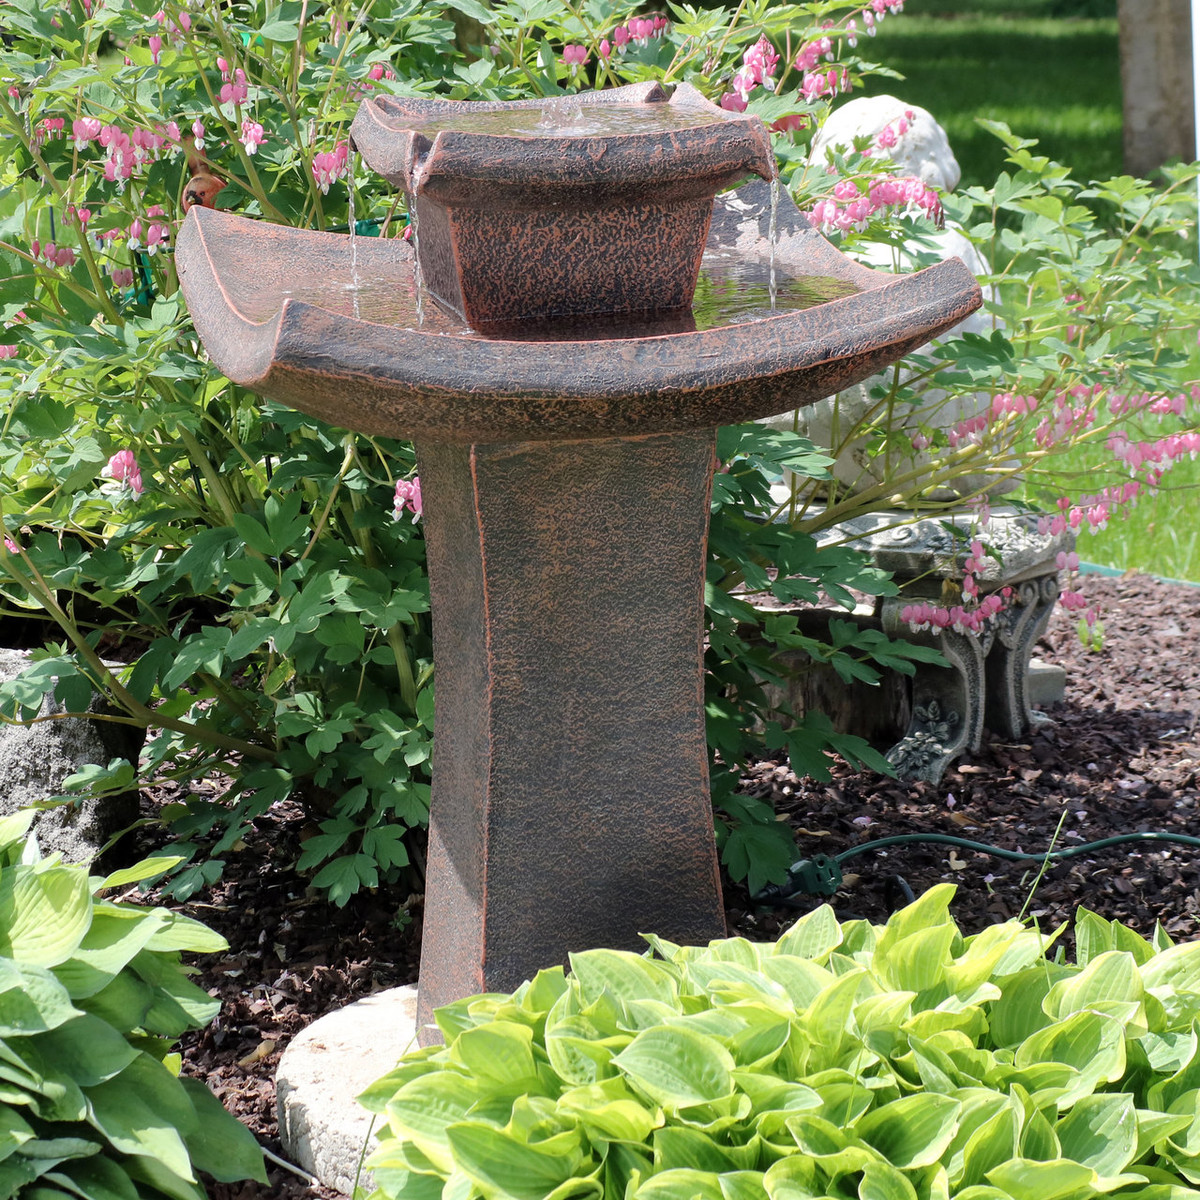 Sunnydaze Modern Zen 2 Tier Outdoor Water Fountain, 30 Inch Tall